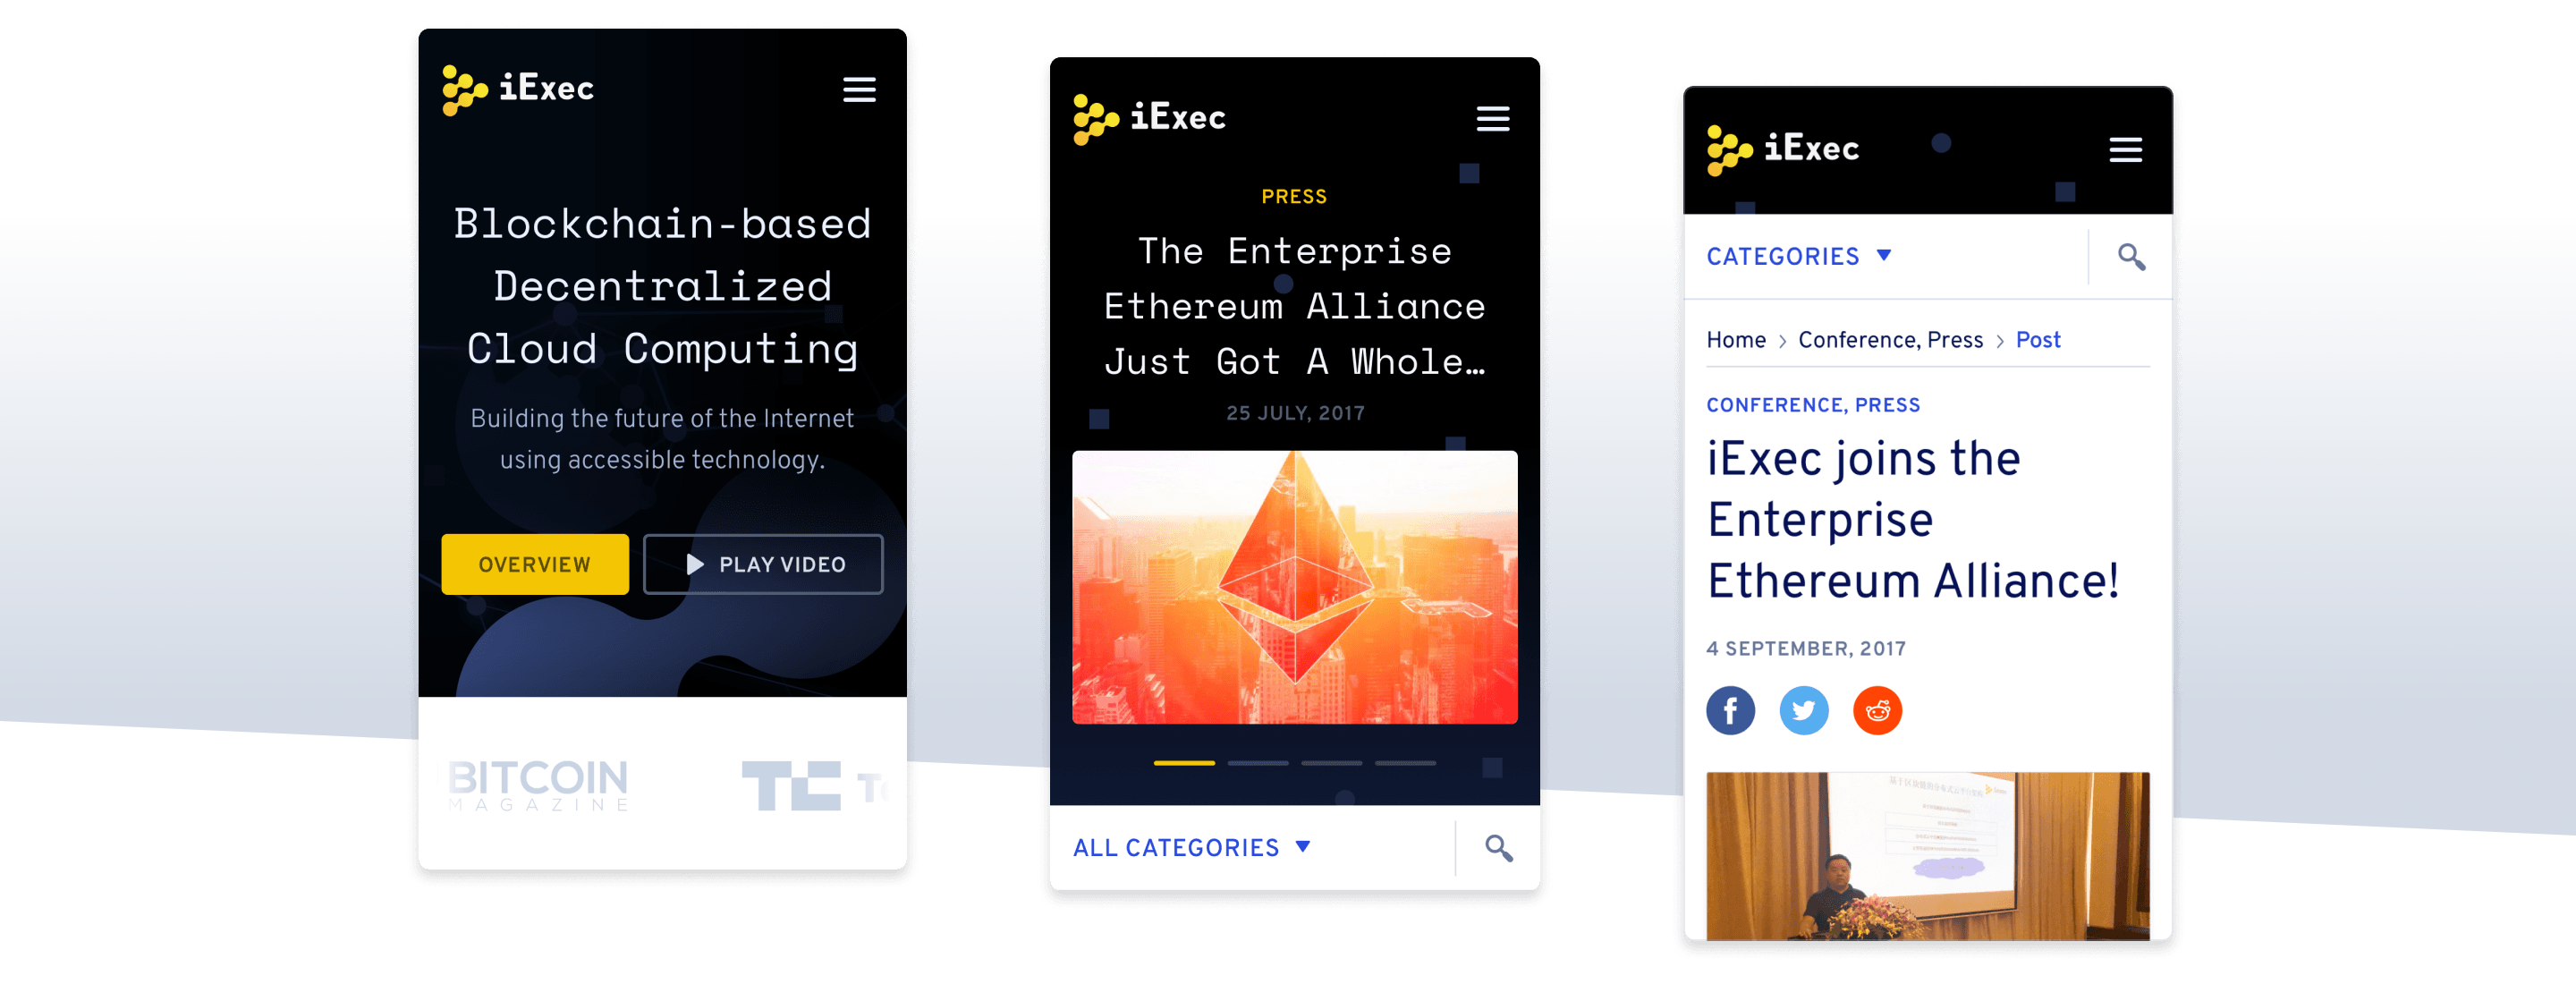 iExec Enterprise alliance cloud